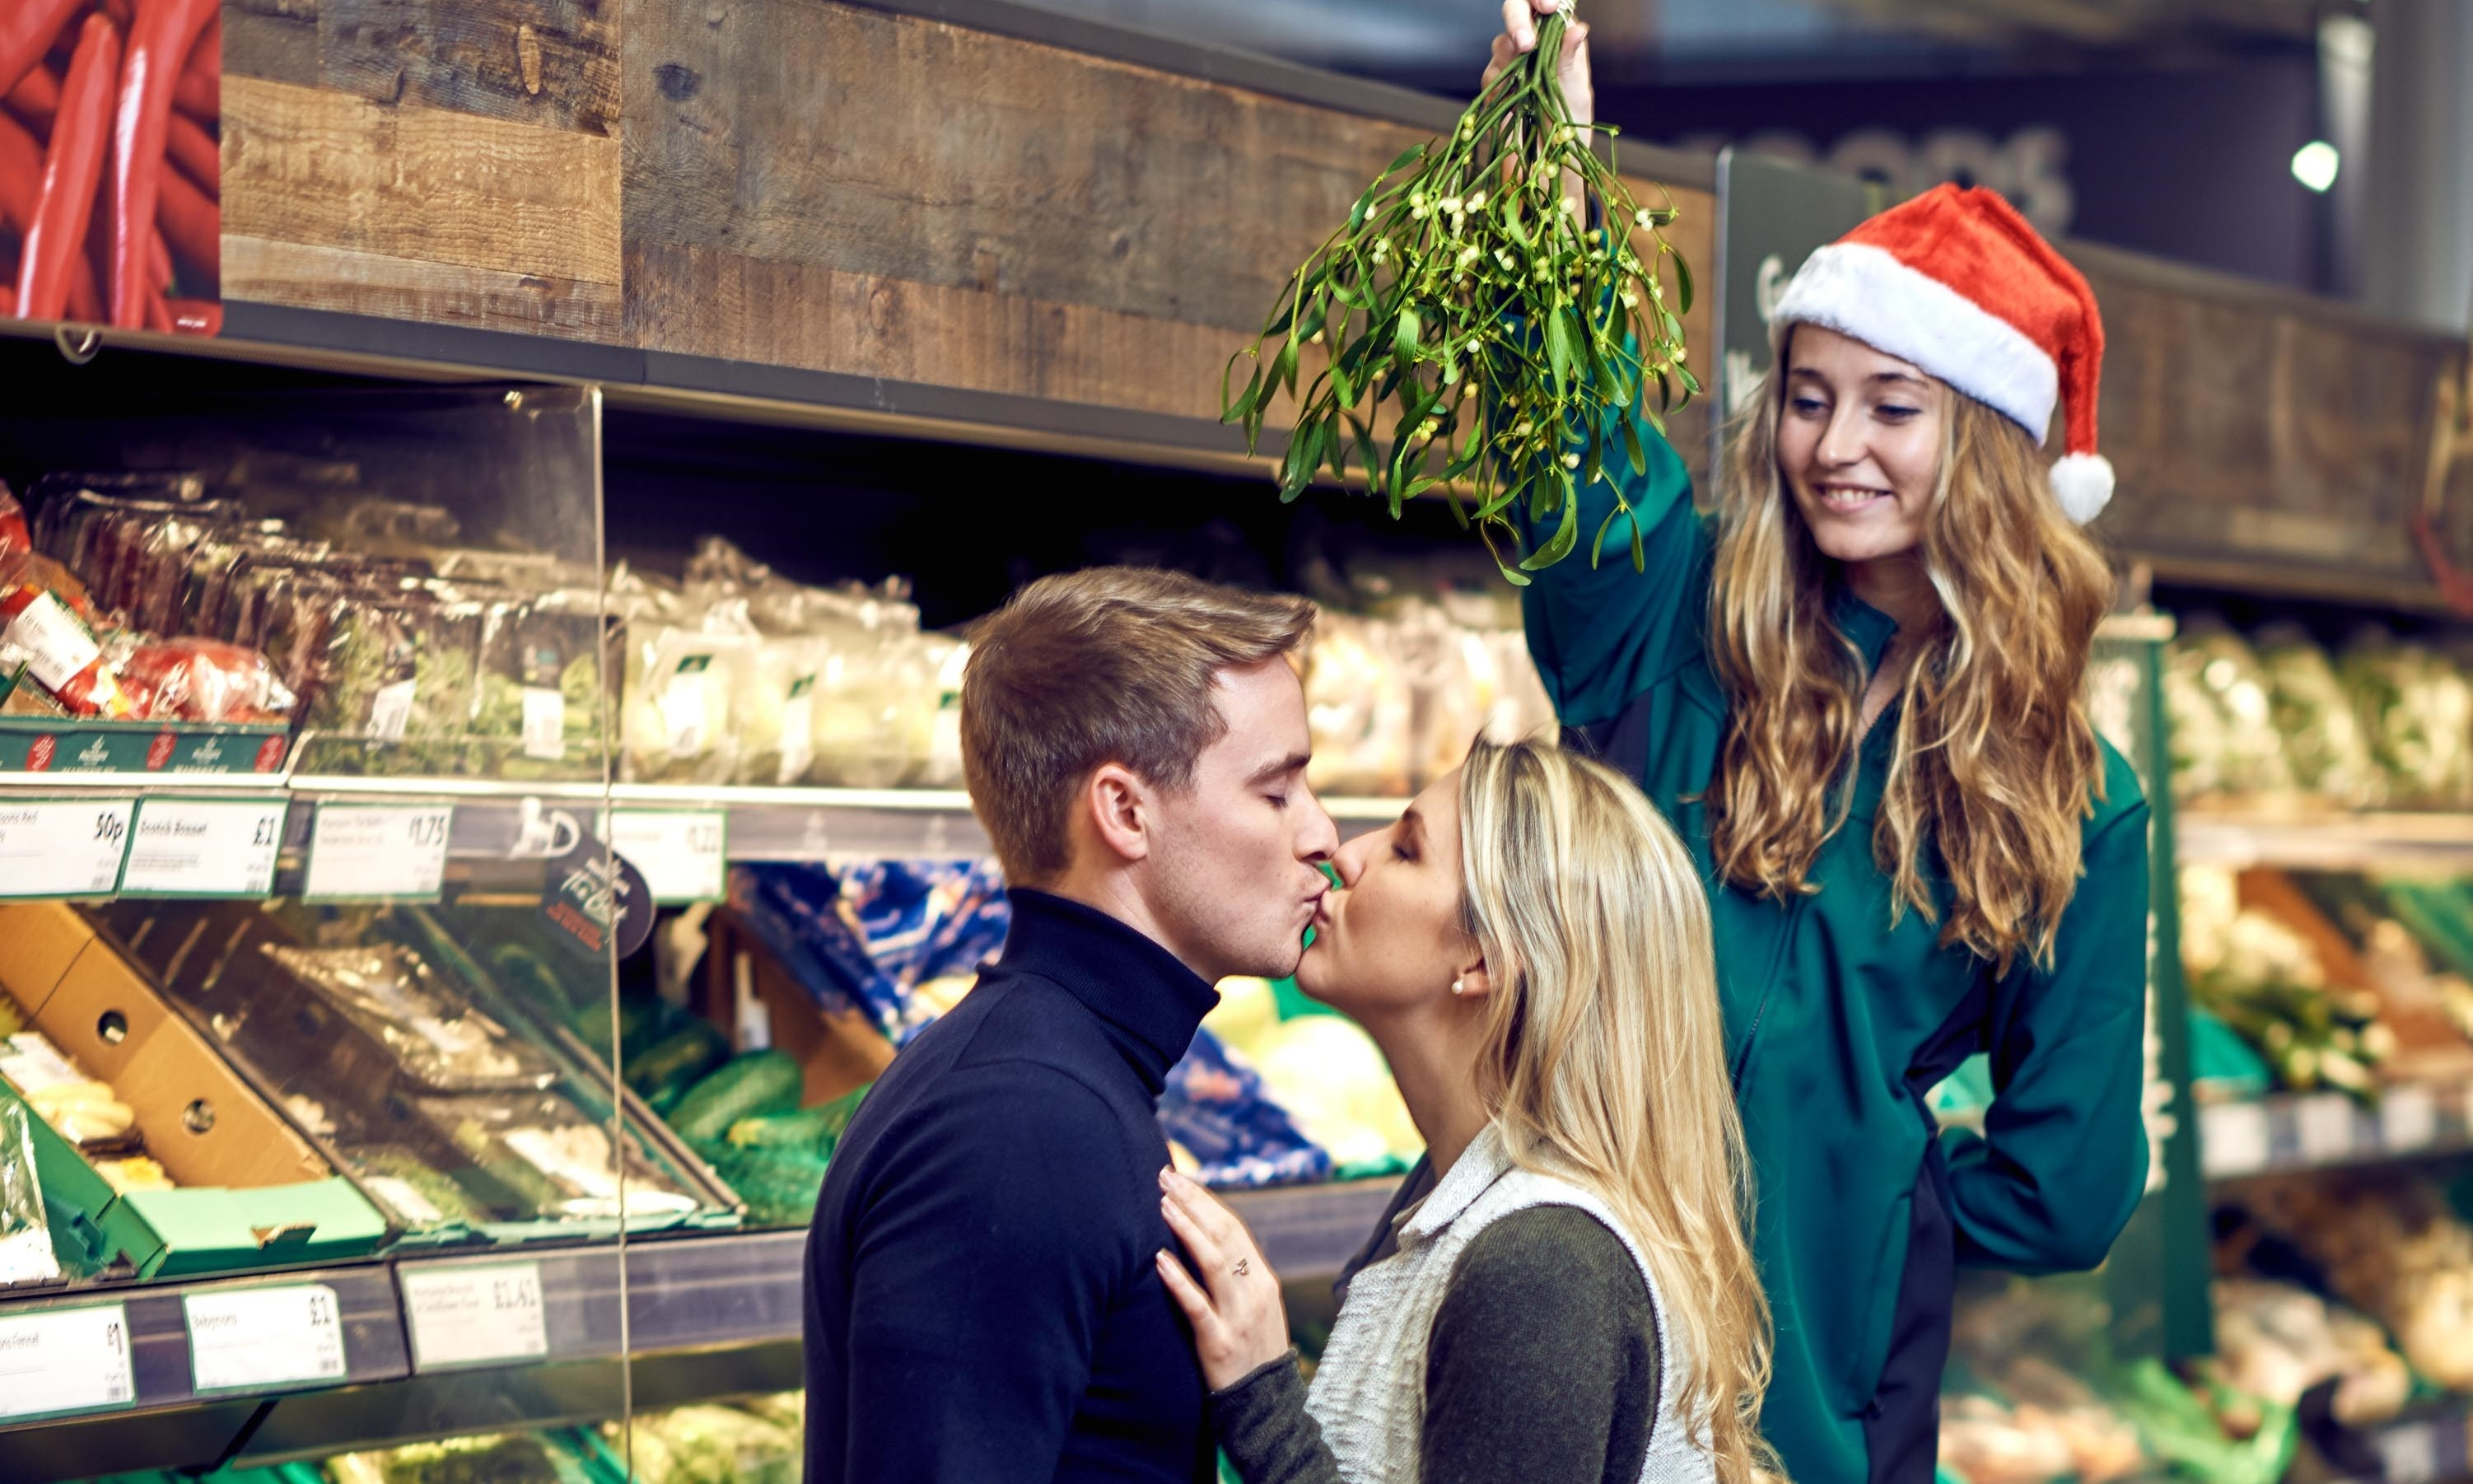 Morrisons is giving away sprigs of mistletoe this year in an effort to increase festive romance.